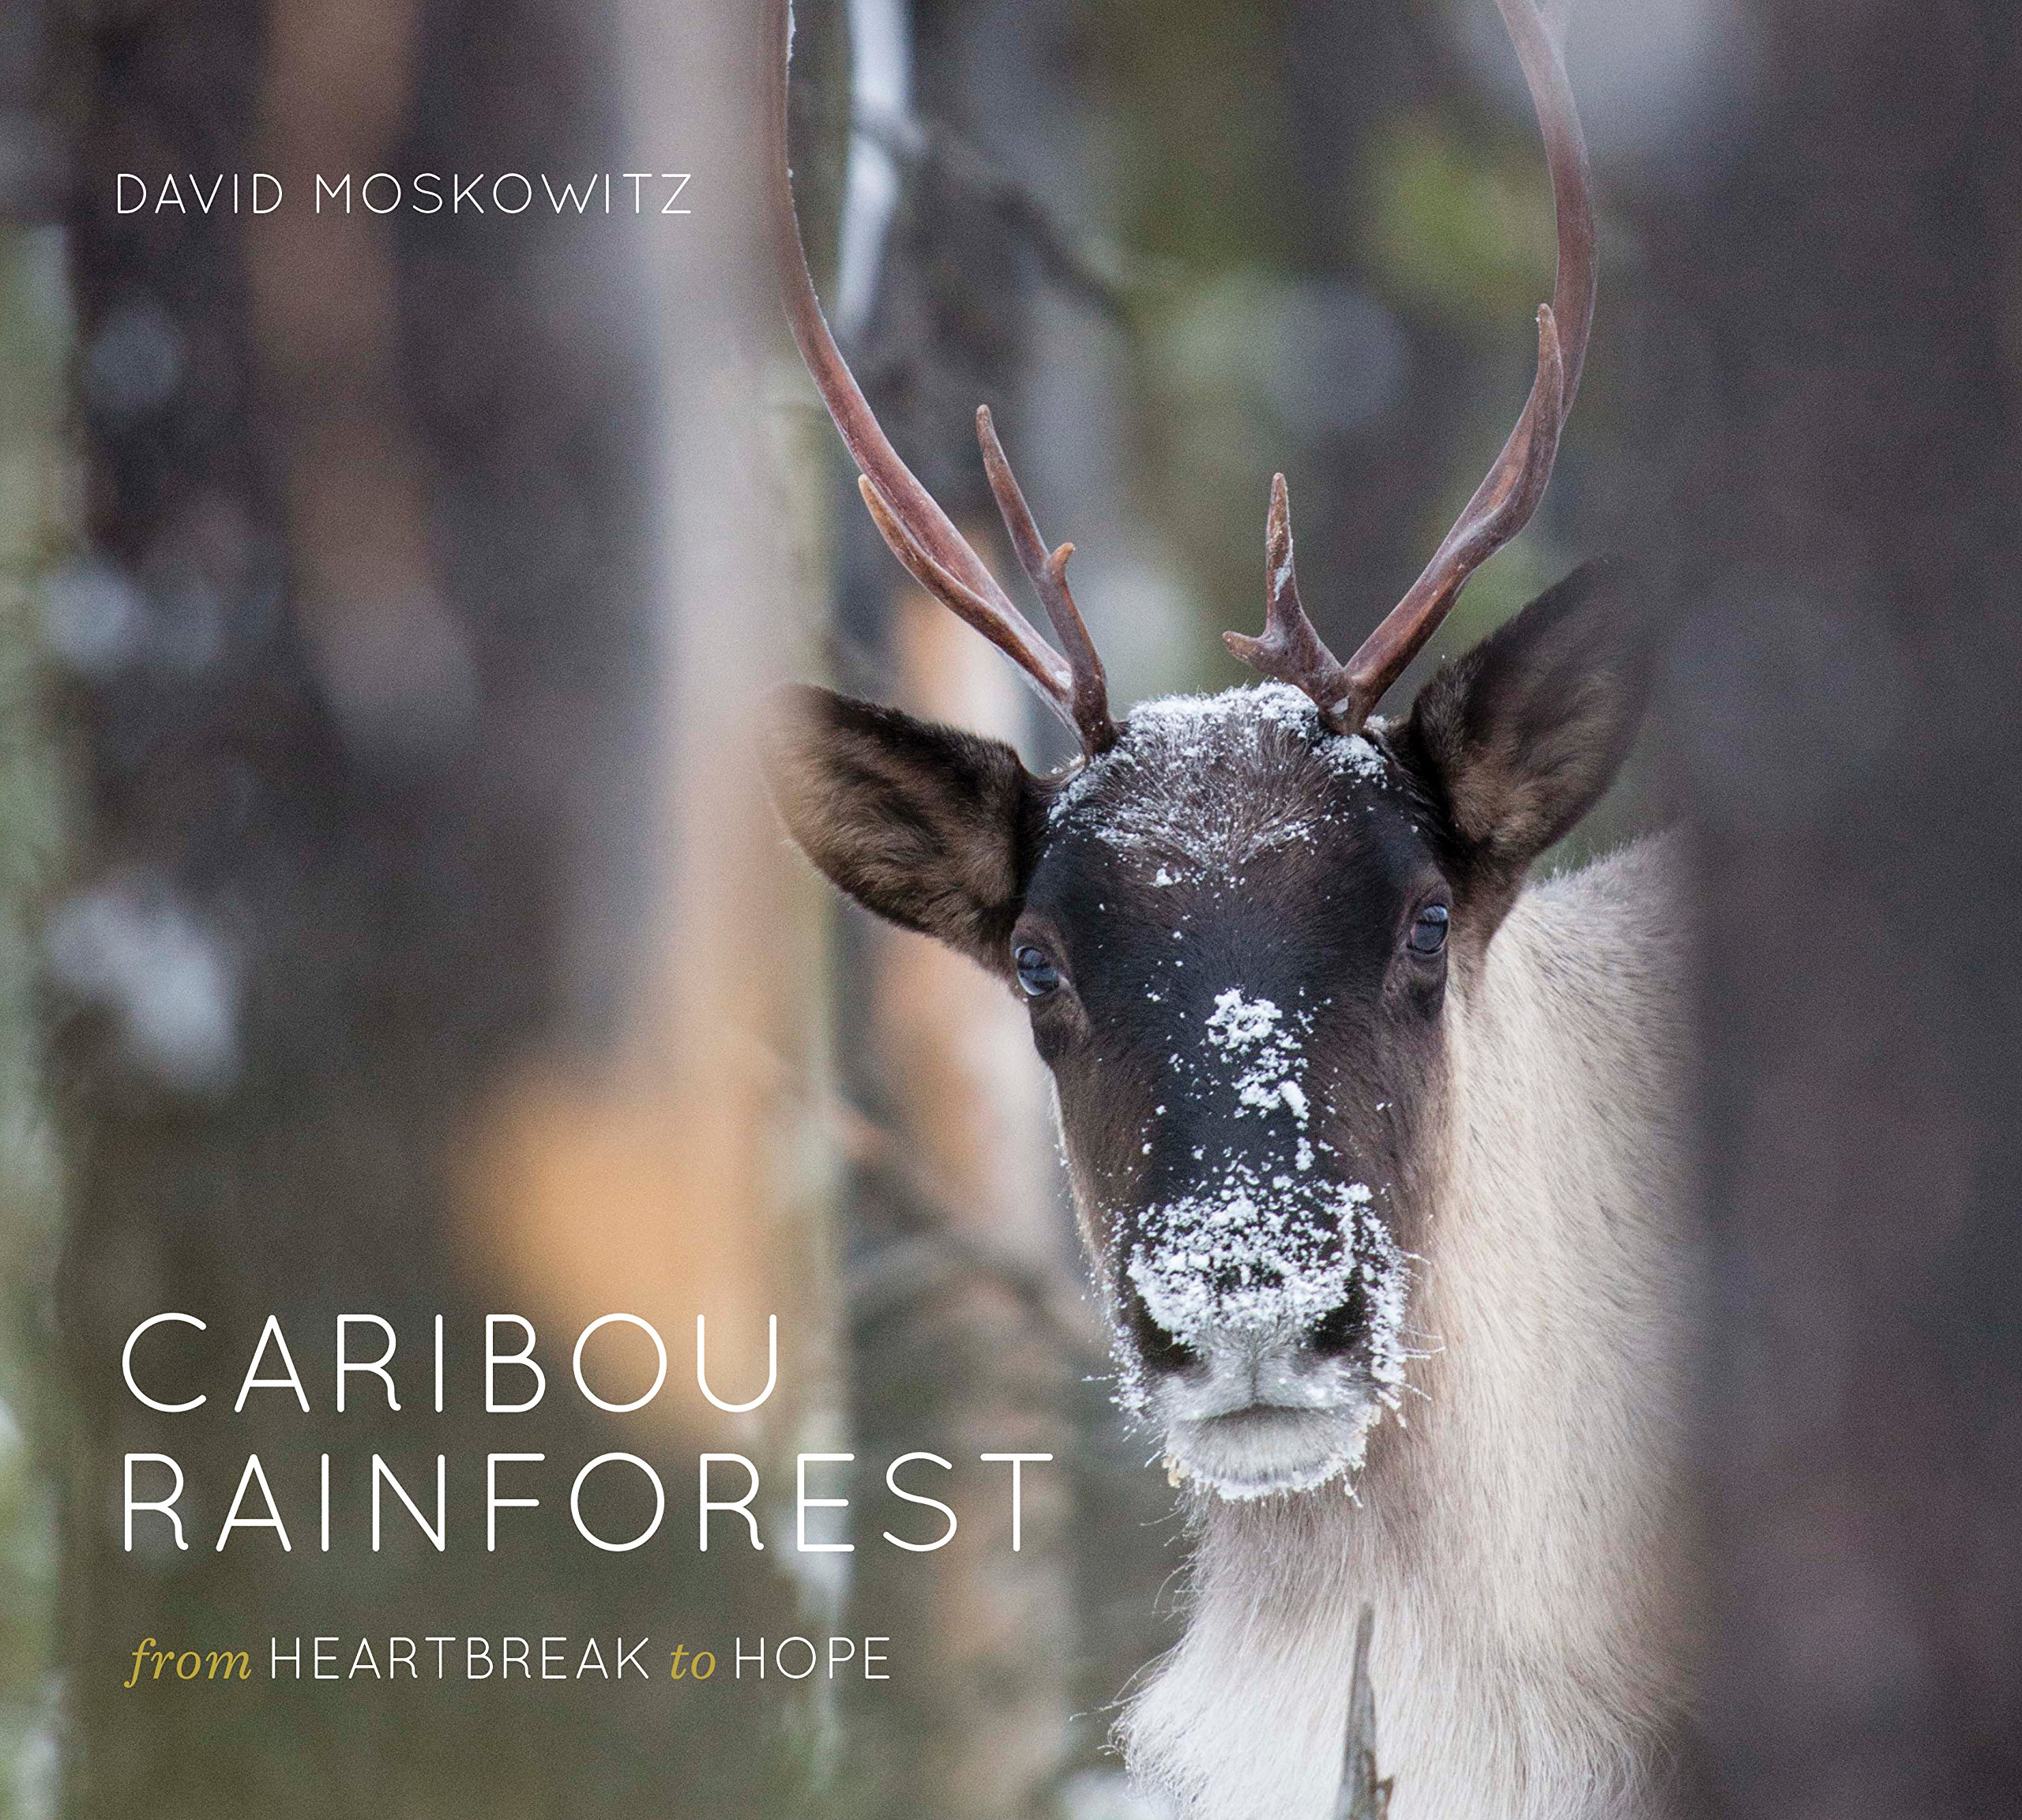 Special Red Barn Event | David Moskowitz, Caribou Rainforest: From Heartbreak to Hope